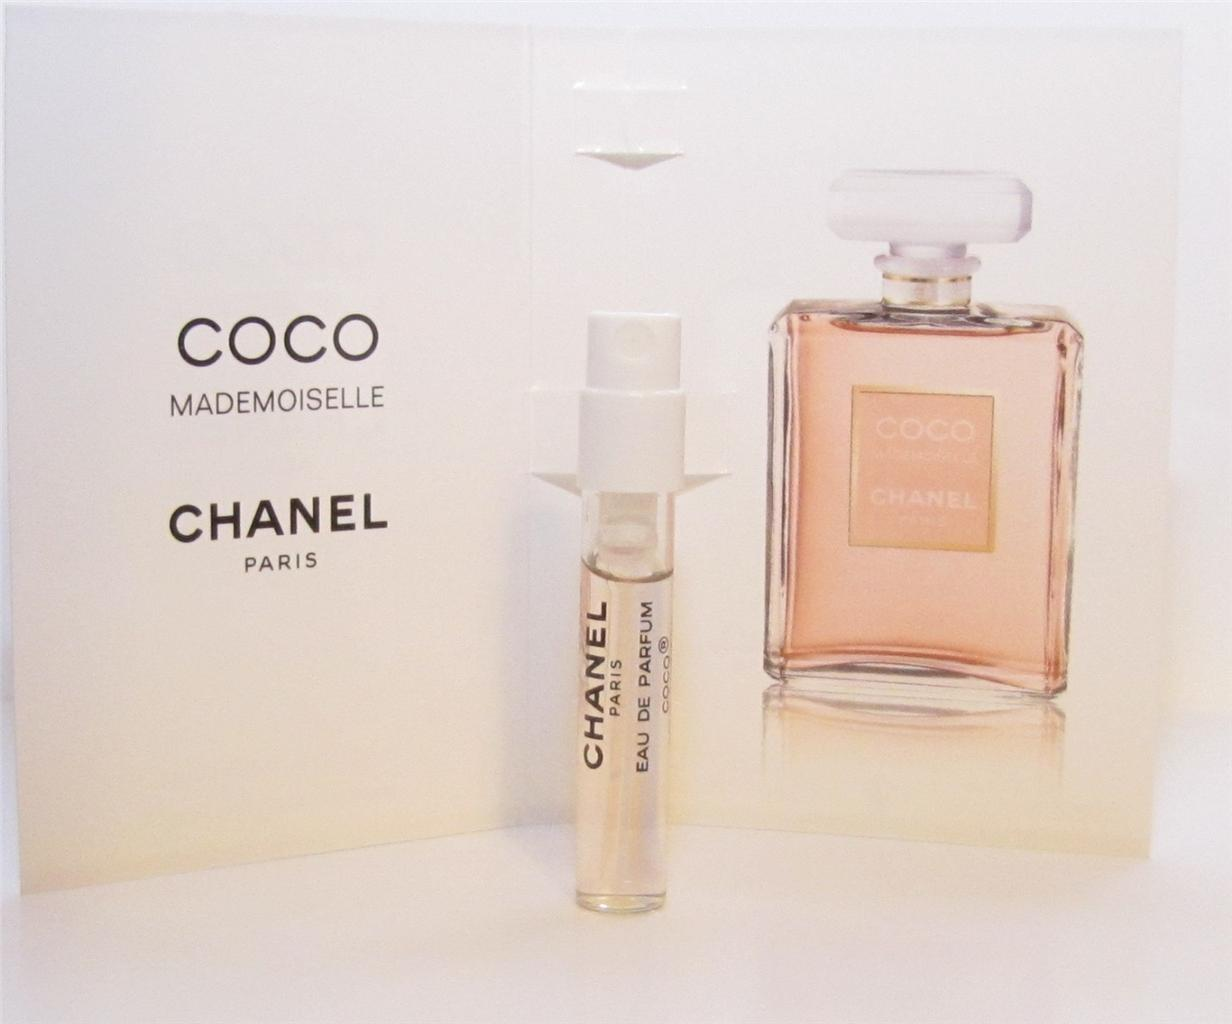 Chanel-Coco-Mademoiselle-Perfume-Sample-Vial-1-5ml-Authentic-Product-Free-Post